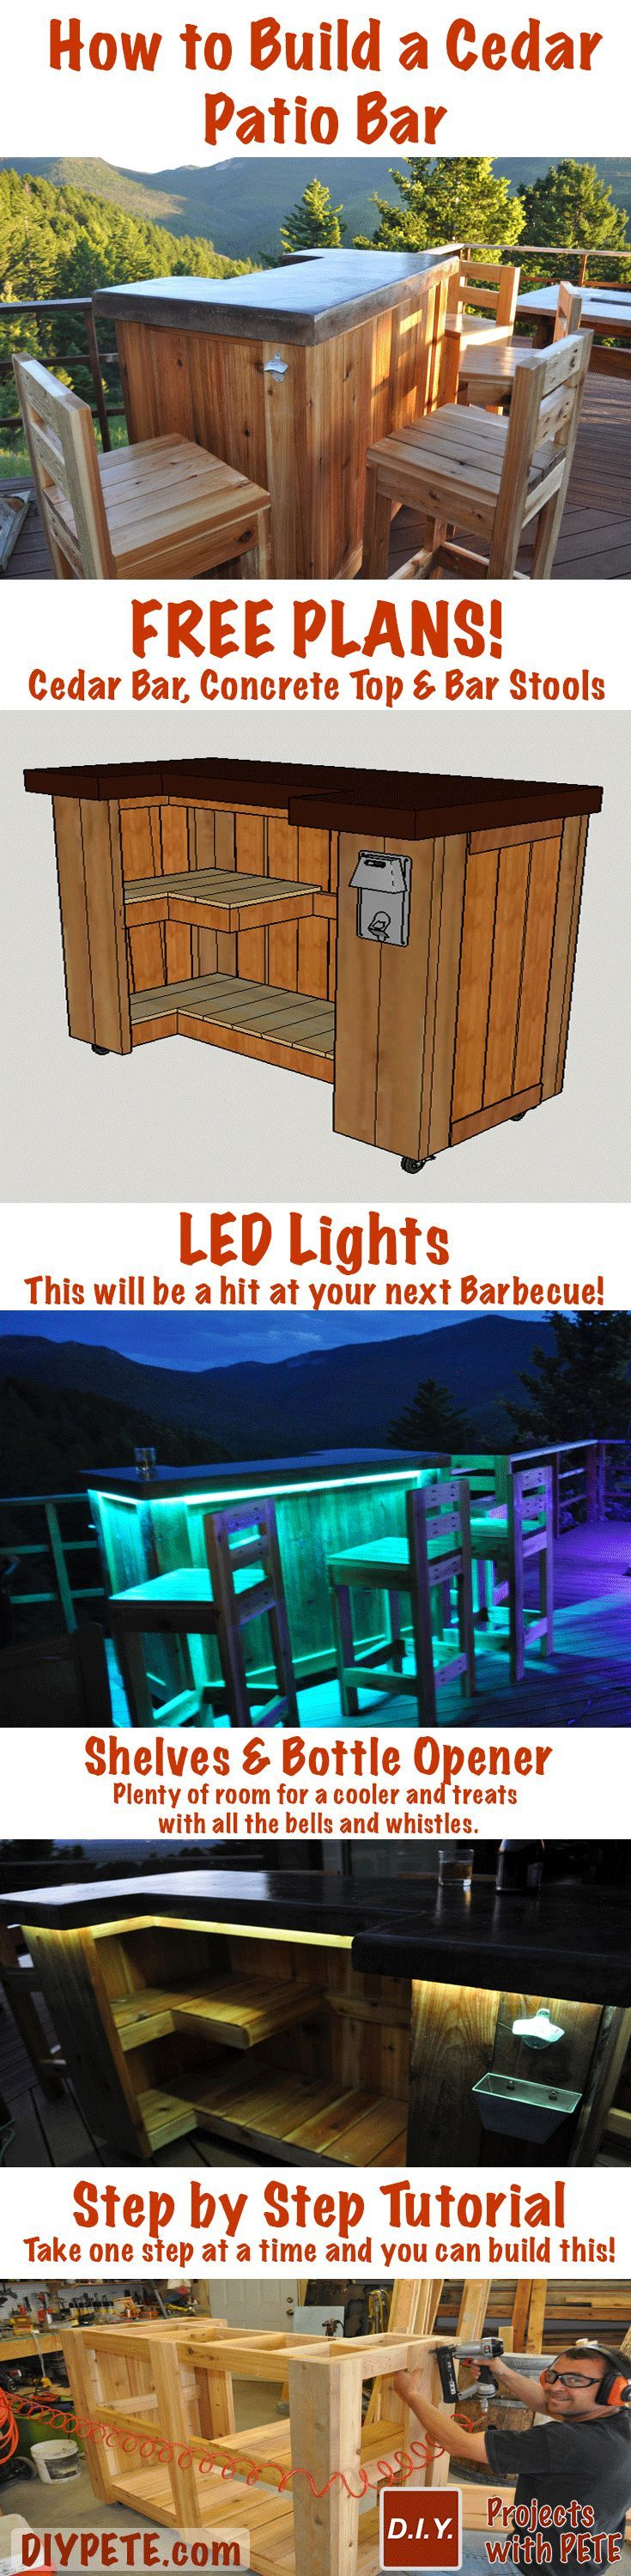 Learn how to build a Patio Bar! Free Plans, Video Tutorial, and Inspiration :) This will be a hit at your next barbecue! Cheers - DIY PETE